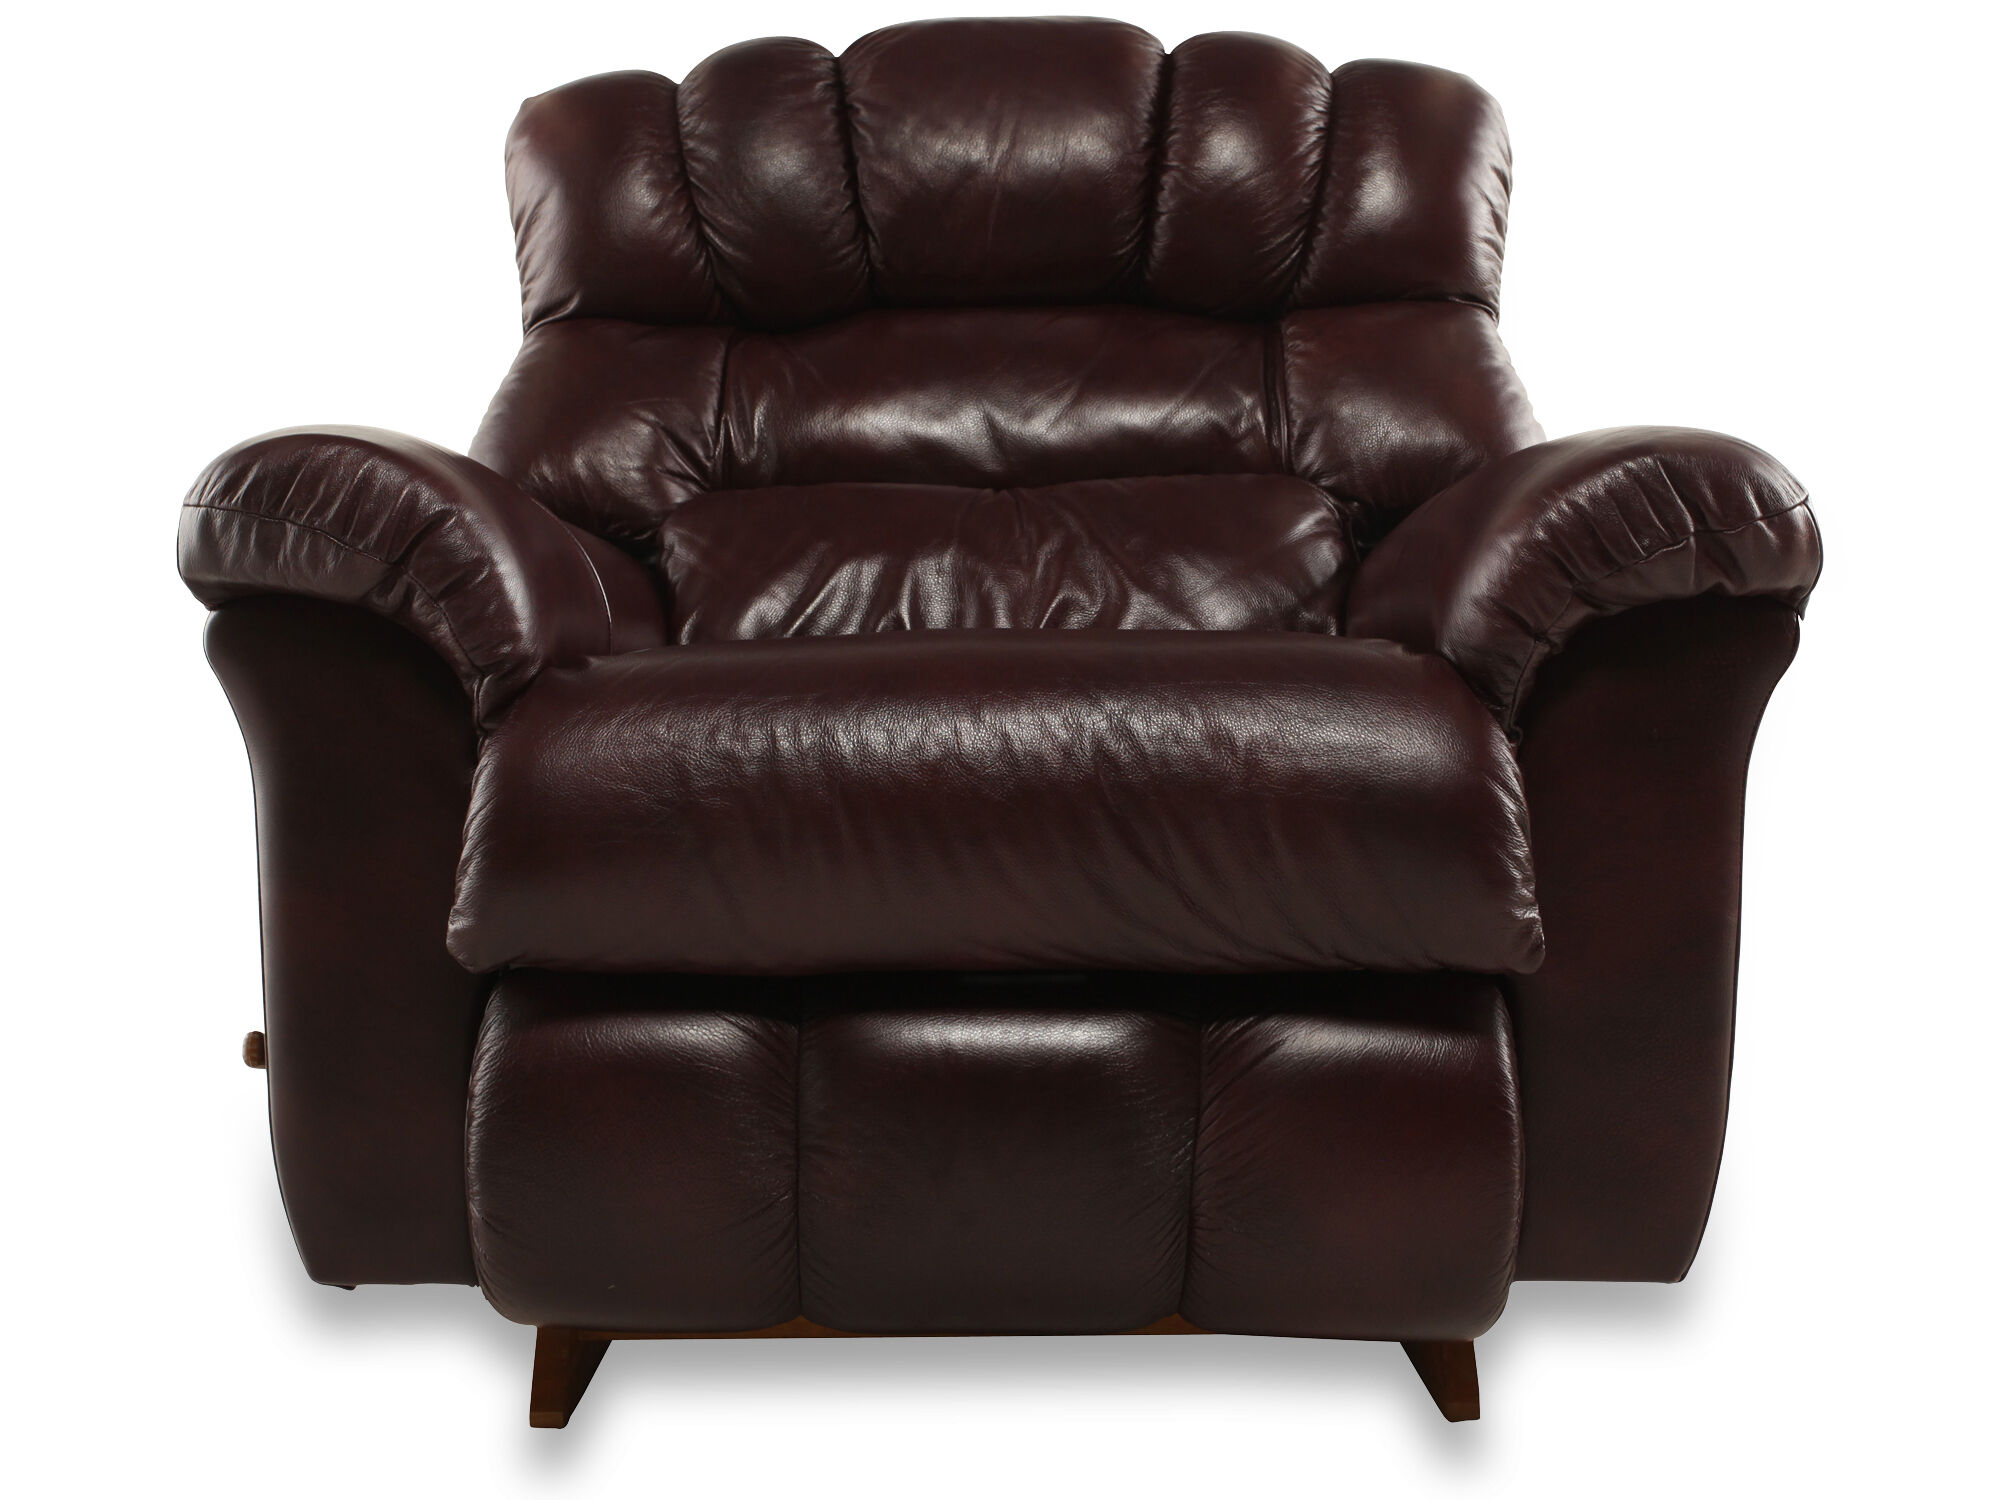 La-Z-Boy Crandell Bordeaux Leather Recliner ...  sc 1 st  Mathis Brothers & Recliners - Reclining Chairs \u0026 Sofas | Mathis Brothers islam-shia.org